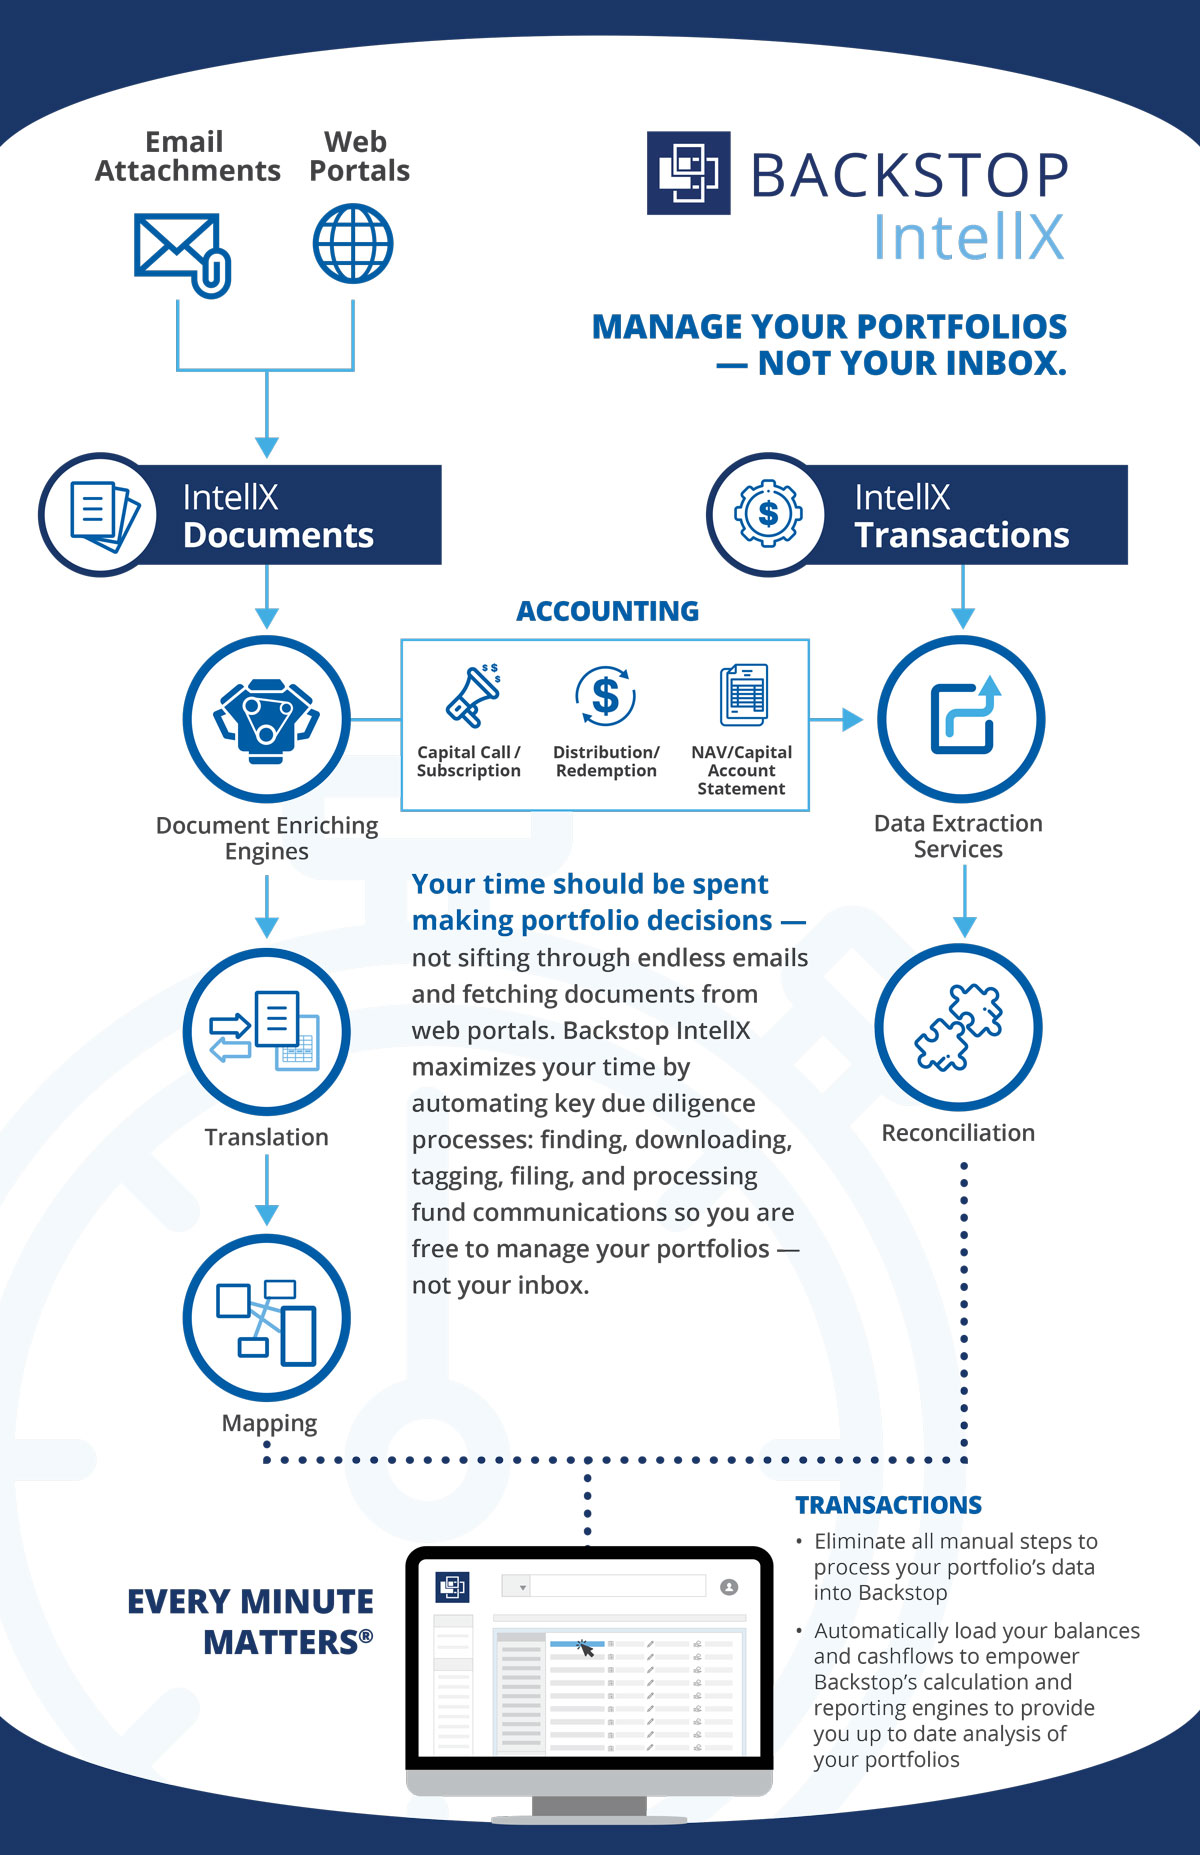 Backstop_Infographic_IntellX_Transactions